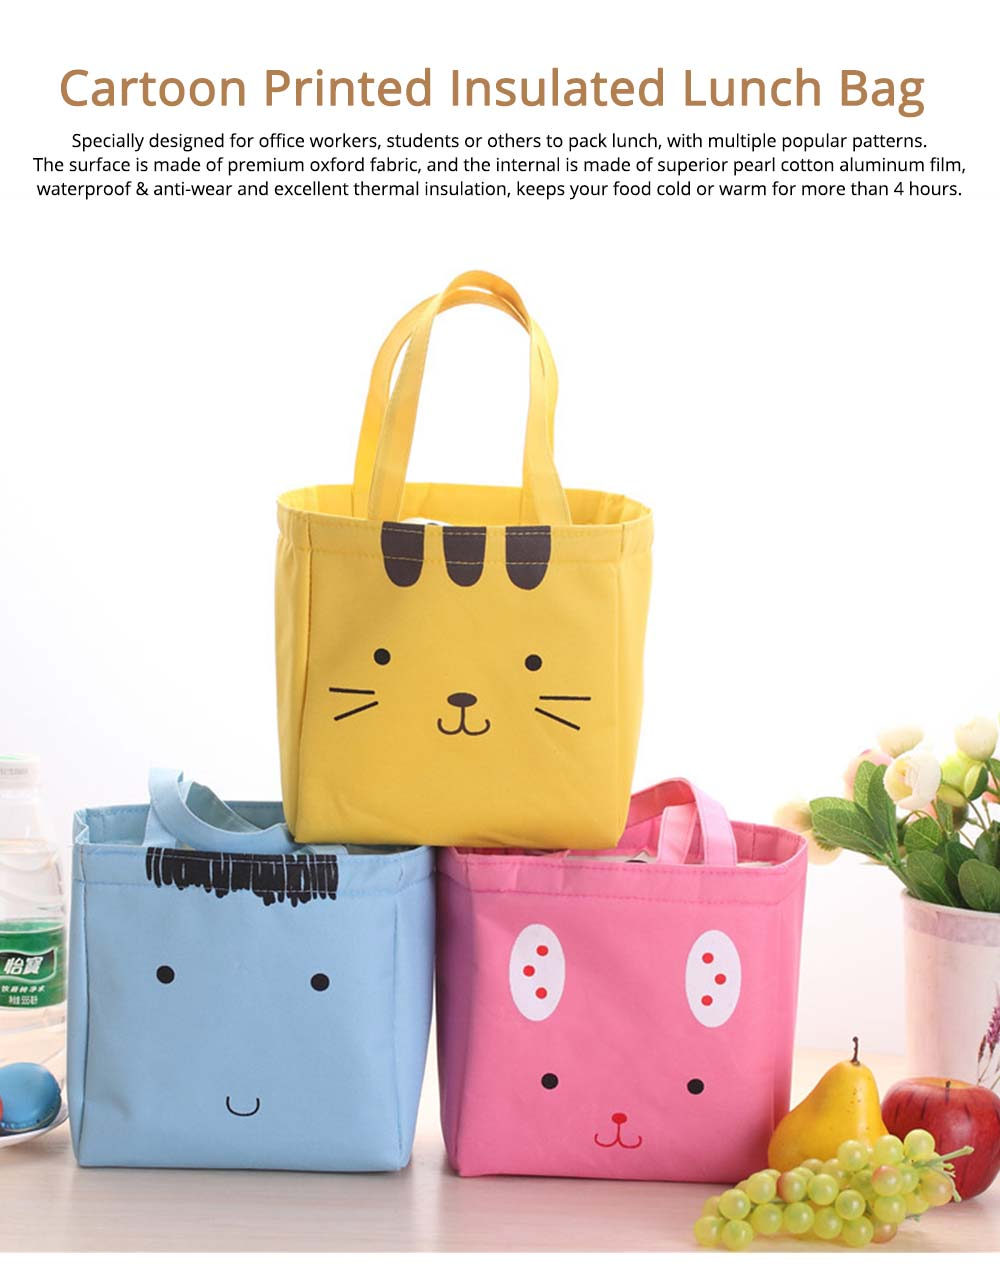 Cartoon Printed Insulated Lunch Bag with Drawsting Sealing, Thermal Insulation Cooler Function Bag for Students Office Workers 0